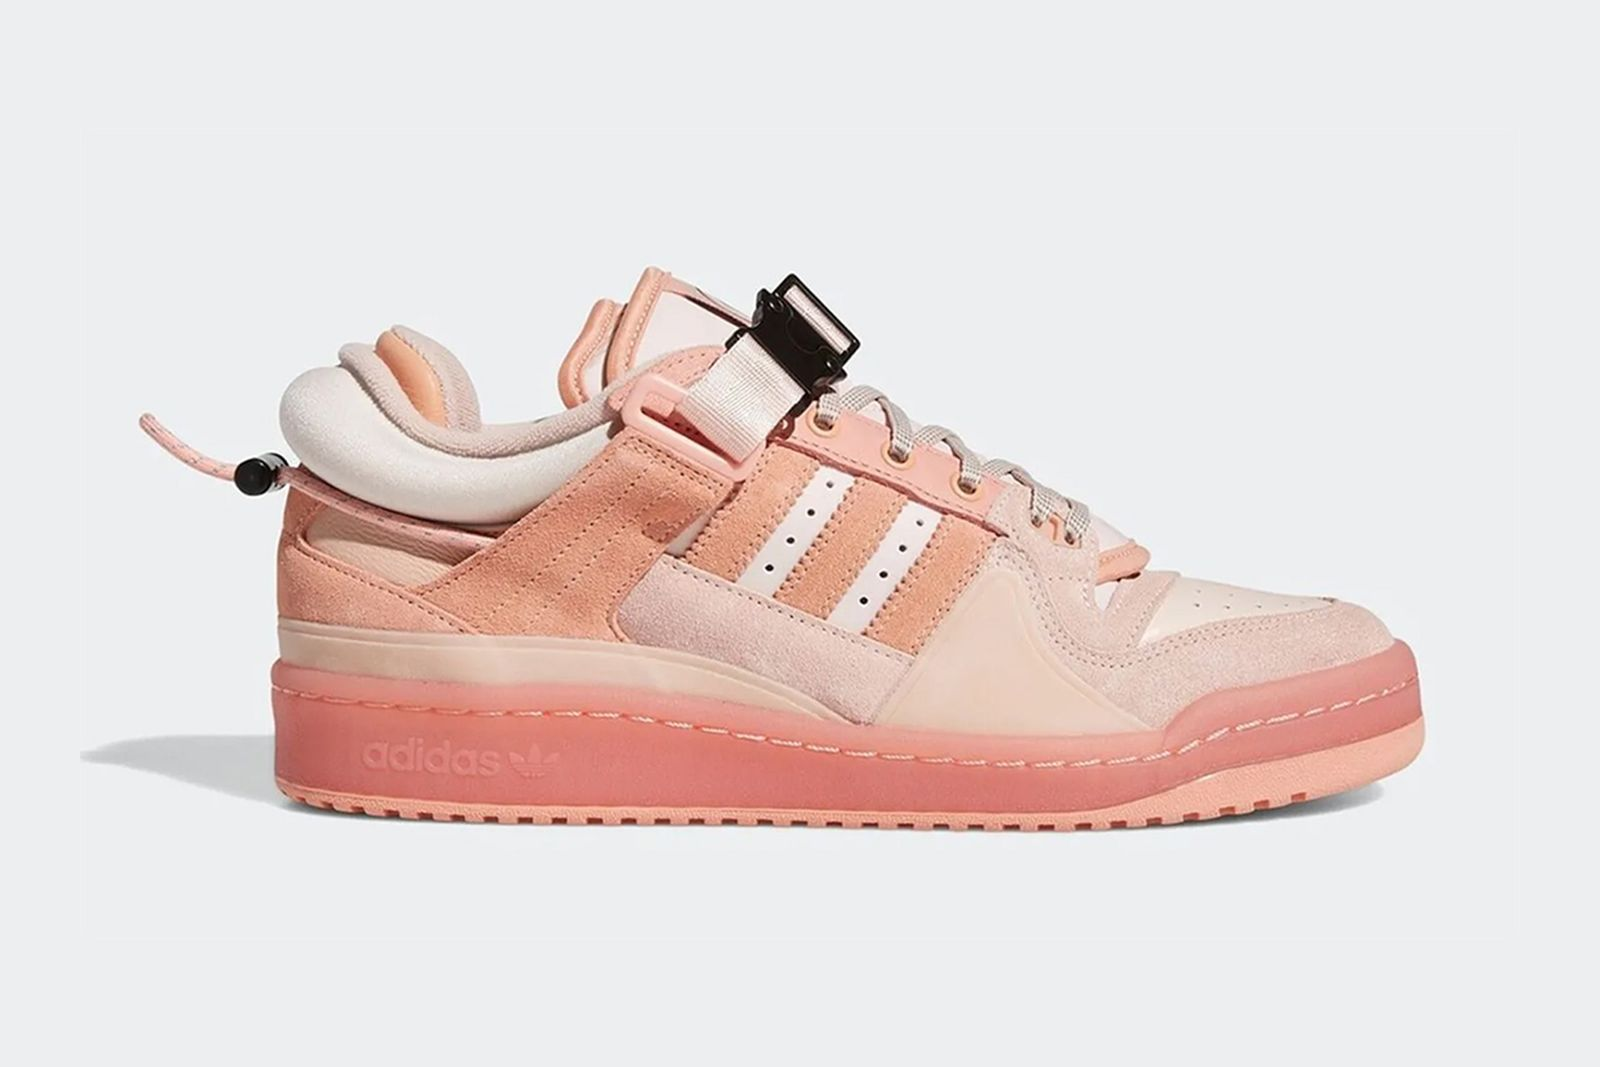 bad-bunny-adidas-forum-buckle-low-pink-release-date-price-07